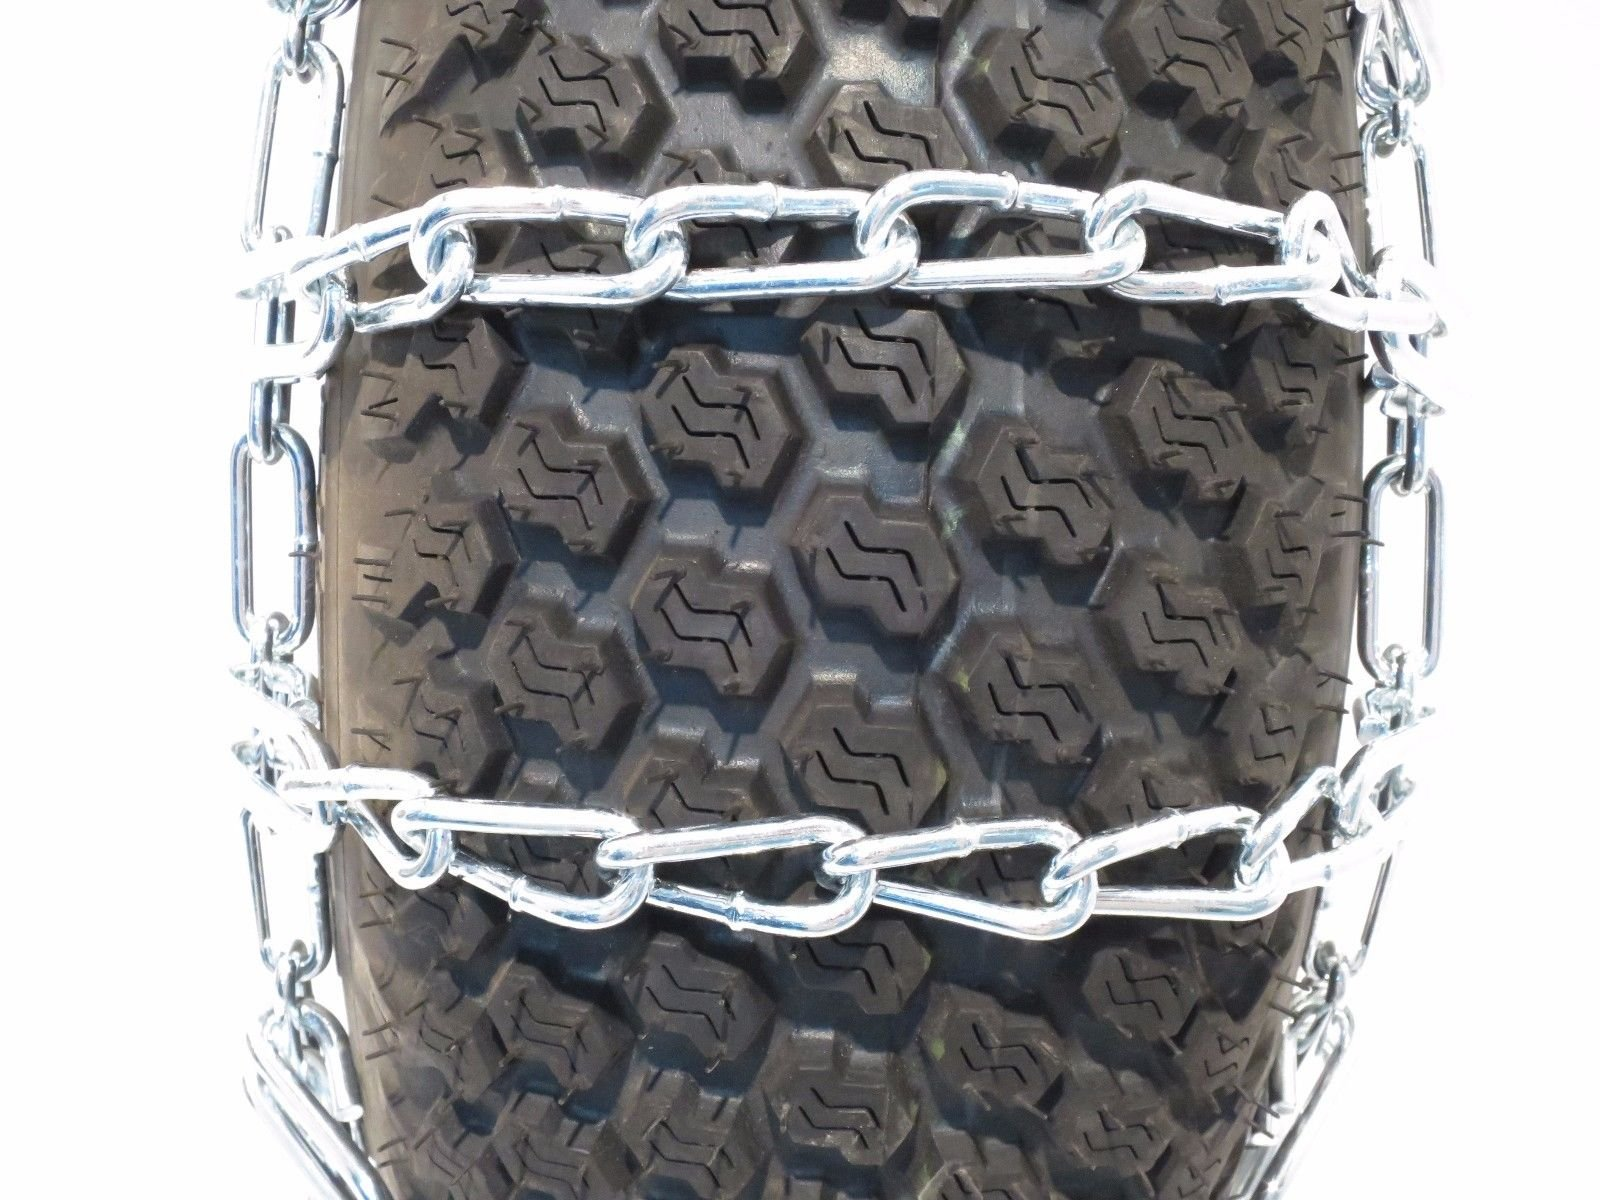 New PAIR 2 Link TIRE CHAINS 23x10.5x12 fits many Honda MUV Pioneer UTV Vehicle by The ROP Shop by The ROP Shop (Image #2)